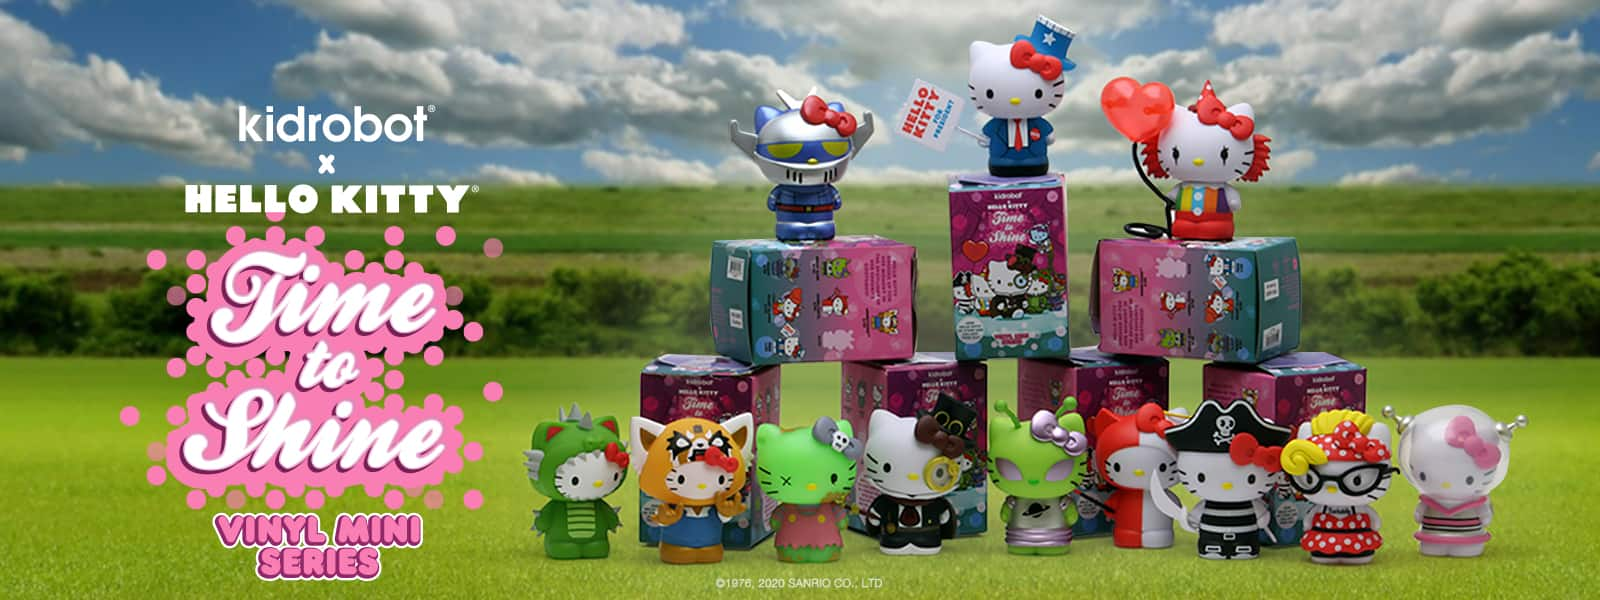 Hello Kitty Toy Figures | Hello Kitty Dolls | Hello Kitty Plush | Hello Kitty Keychains | Hello Kitty Stuff by Kidrobot